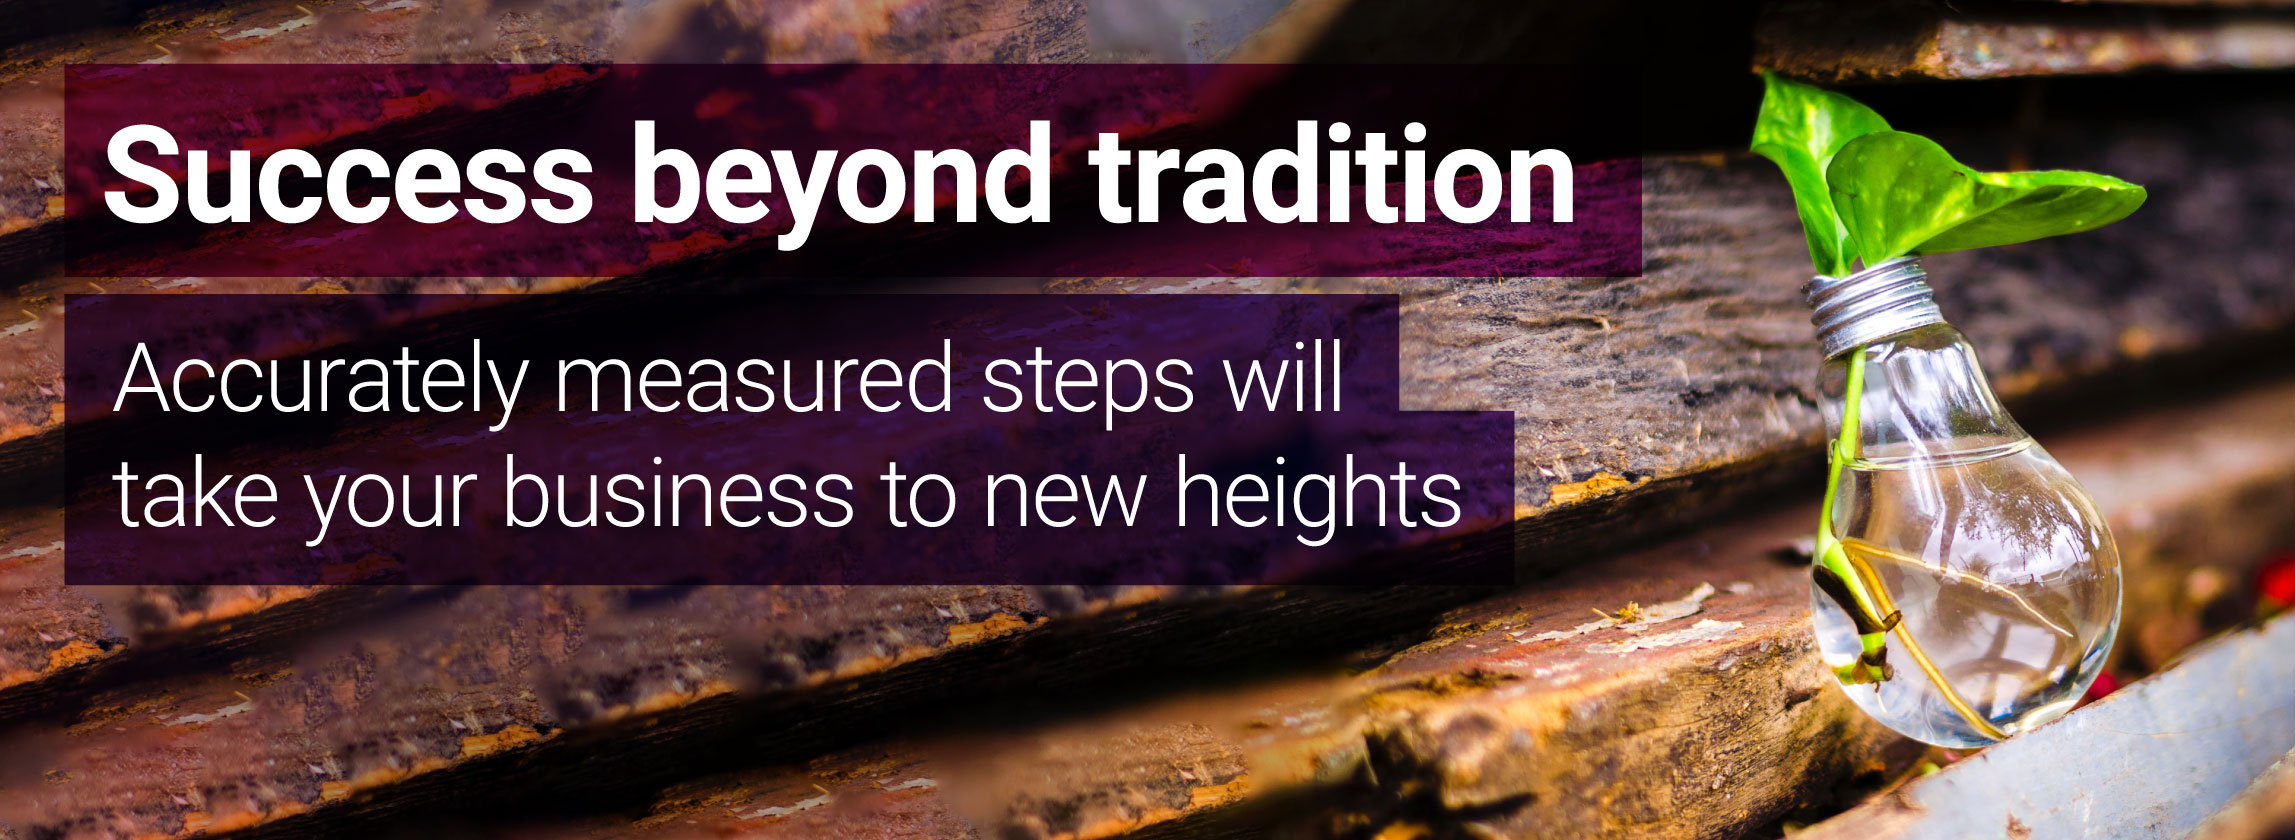 Success beyond tradition, taking your business to new heights